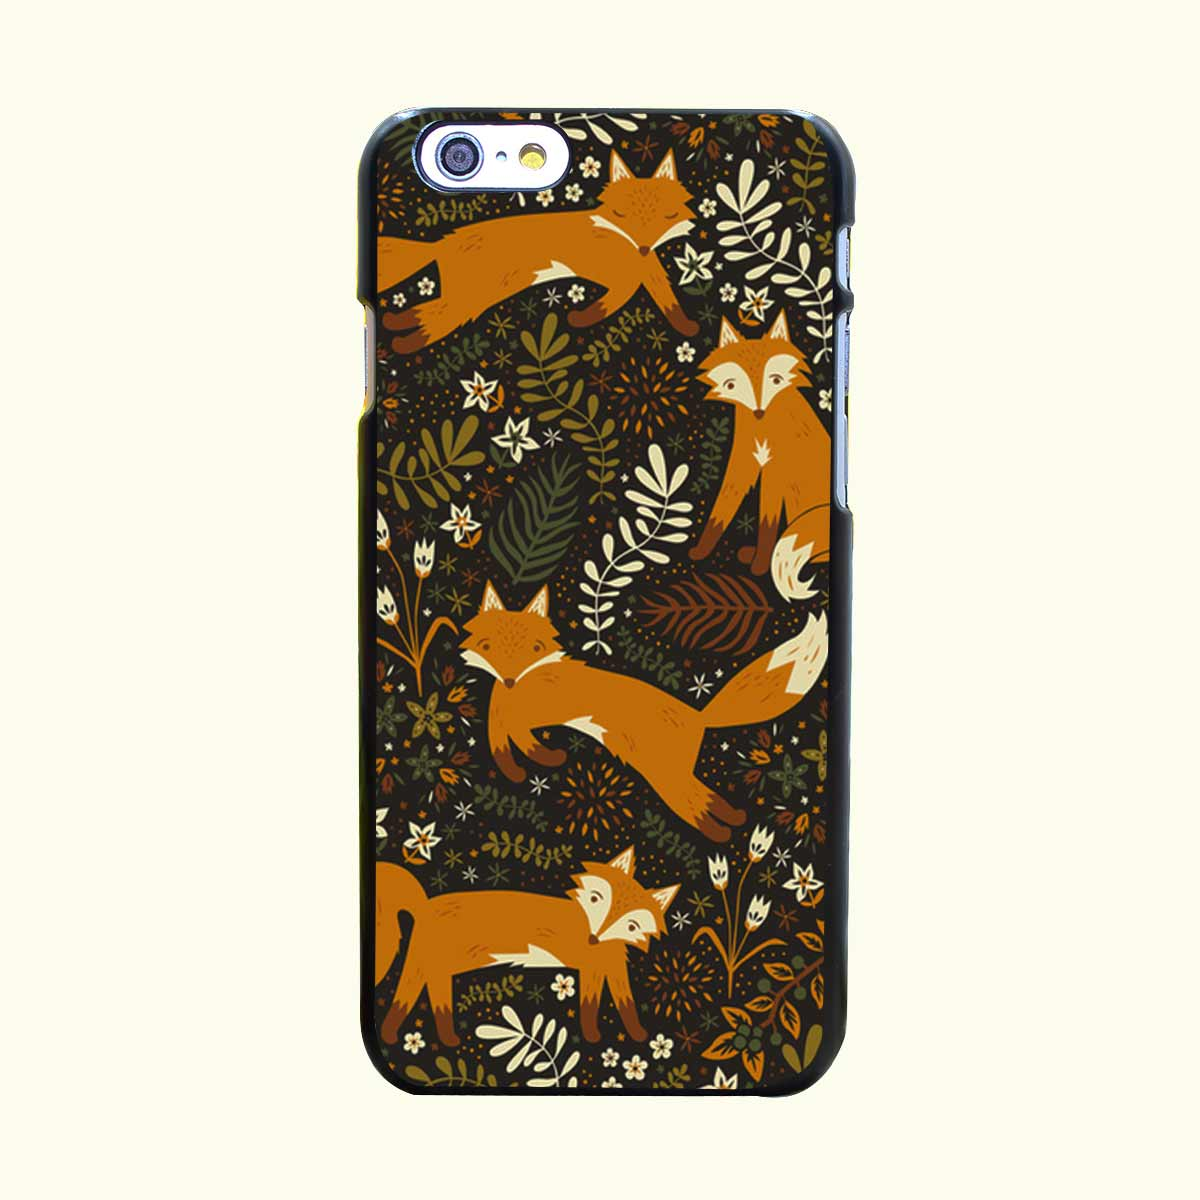 Fox Tales Hard Black Case Cover for iPhone 4 4s 5 5s 5c 6 6s Plus Print on Black Back